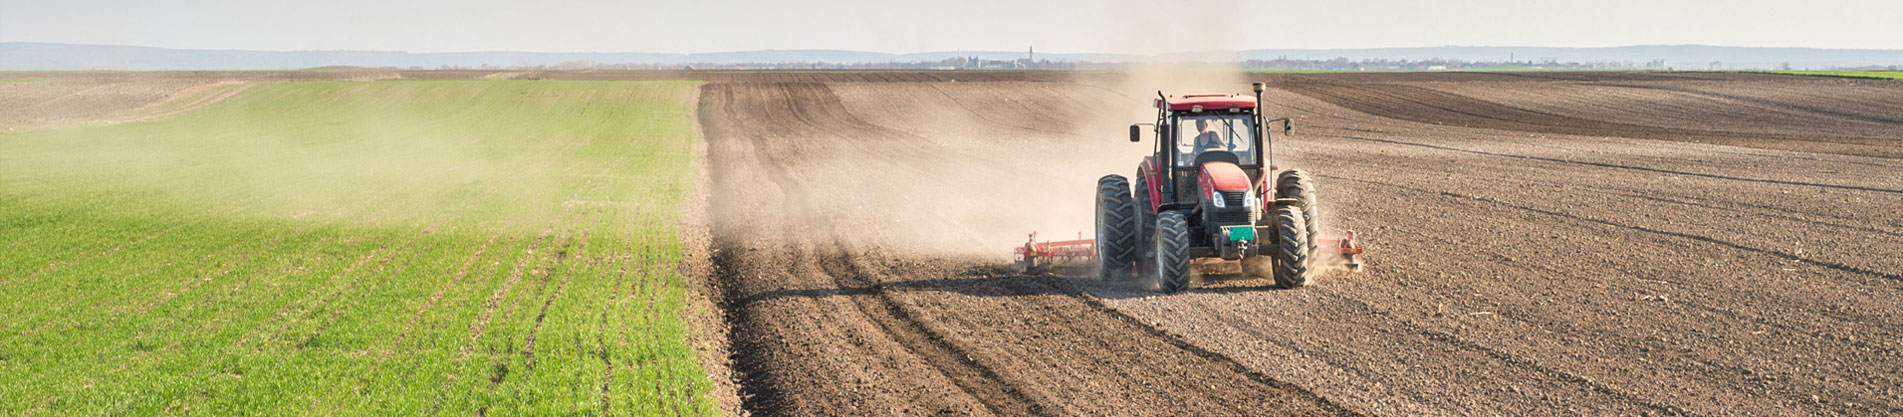 Agriculture manpower